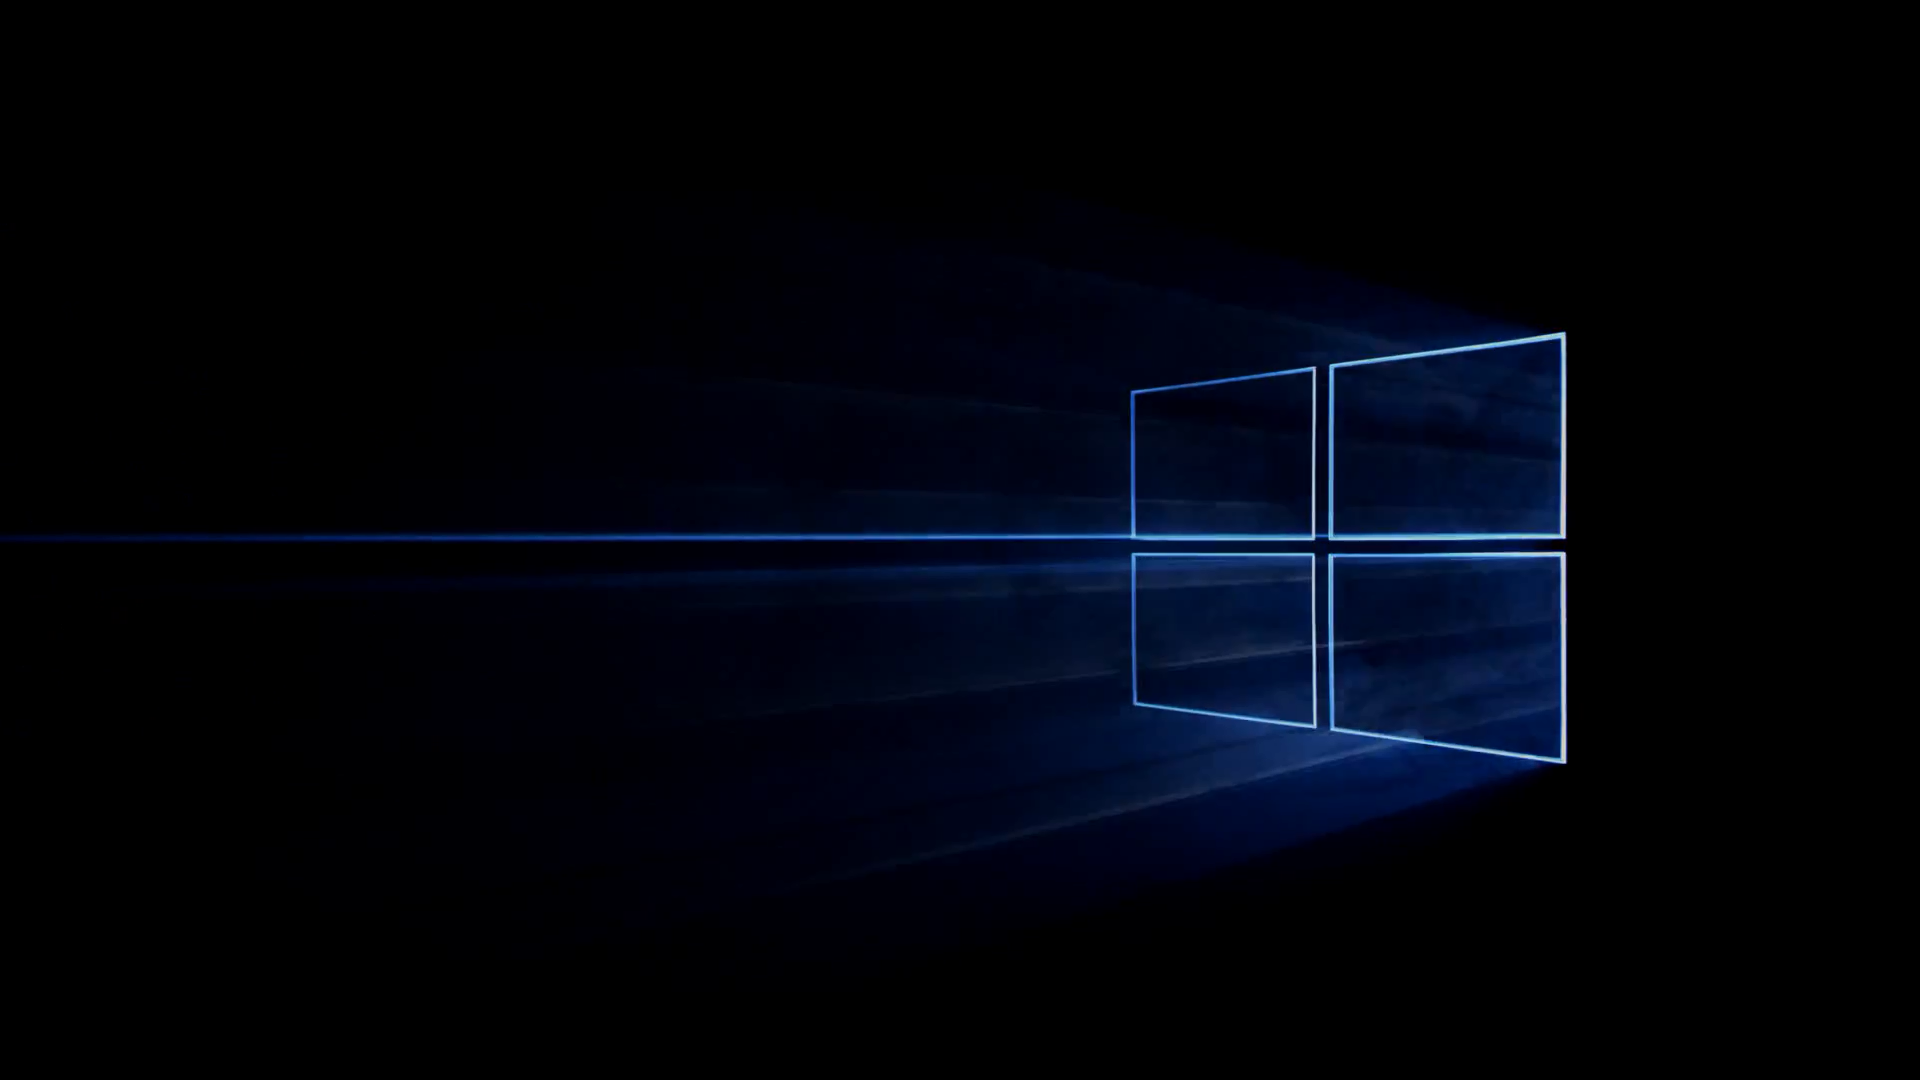 Windows-10-HD-Wallpaper-8